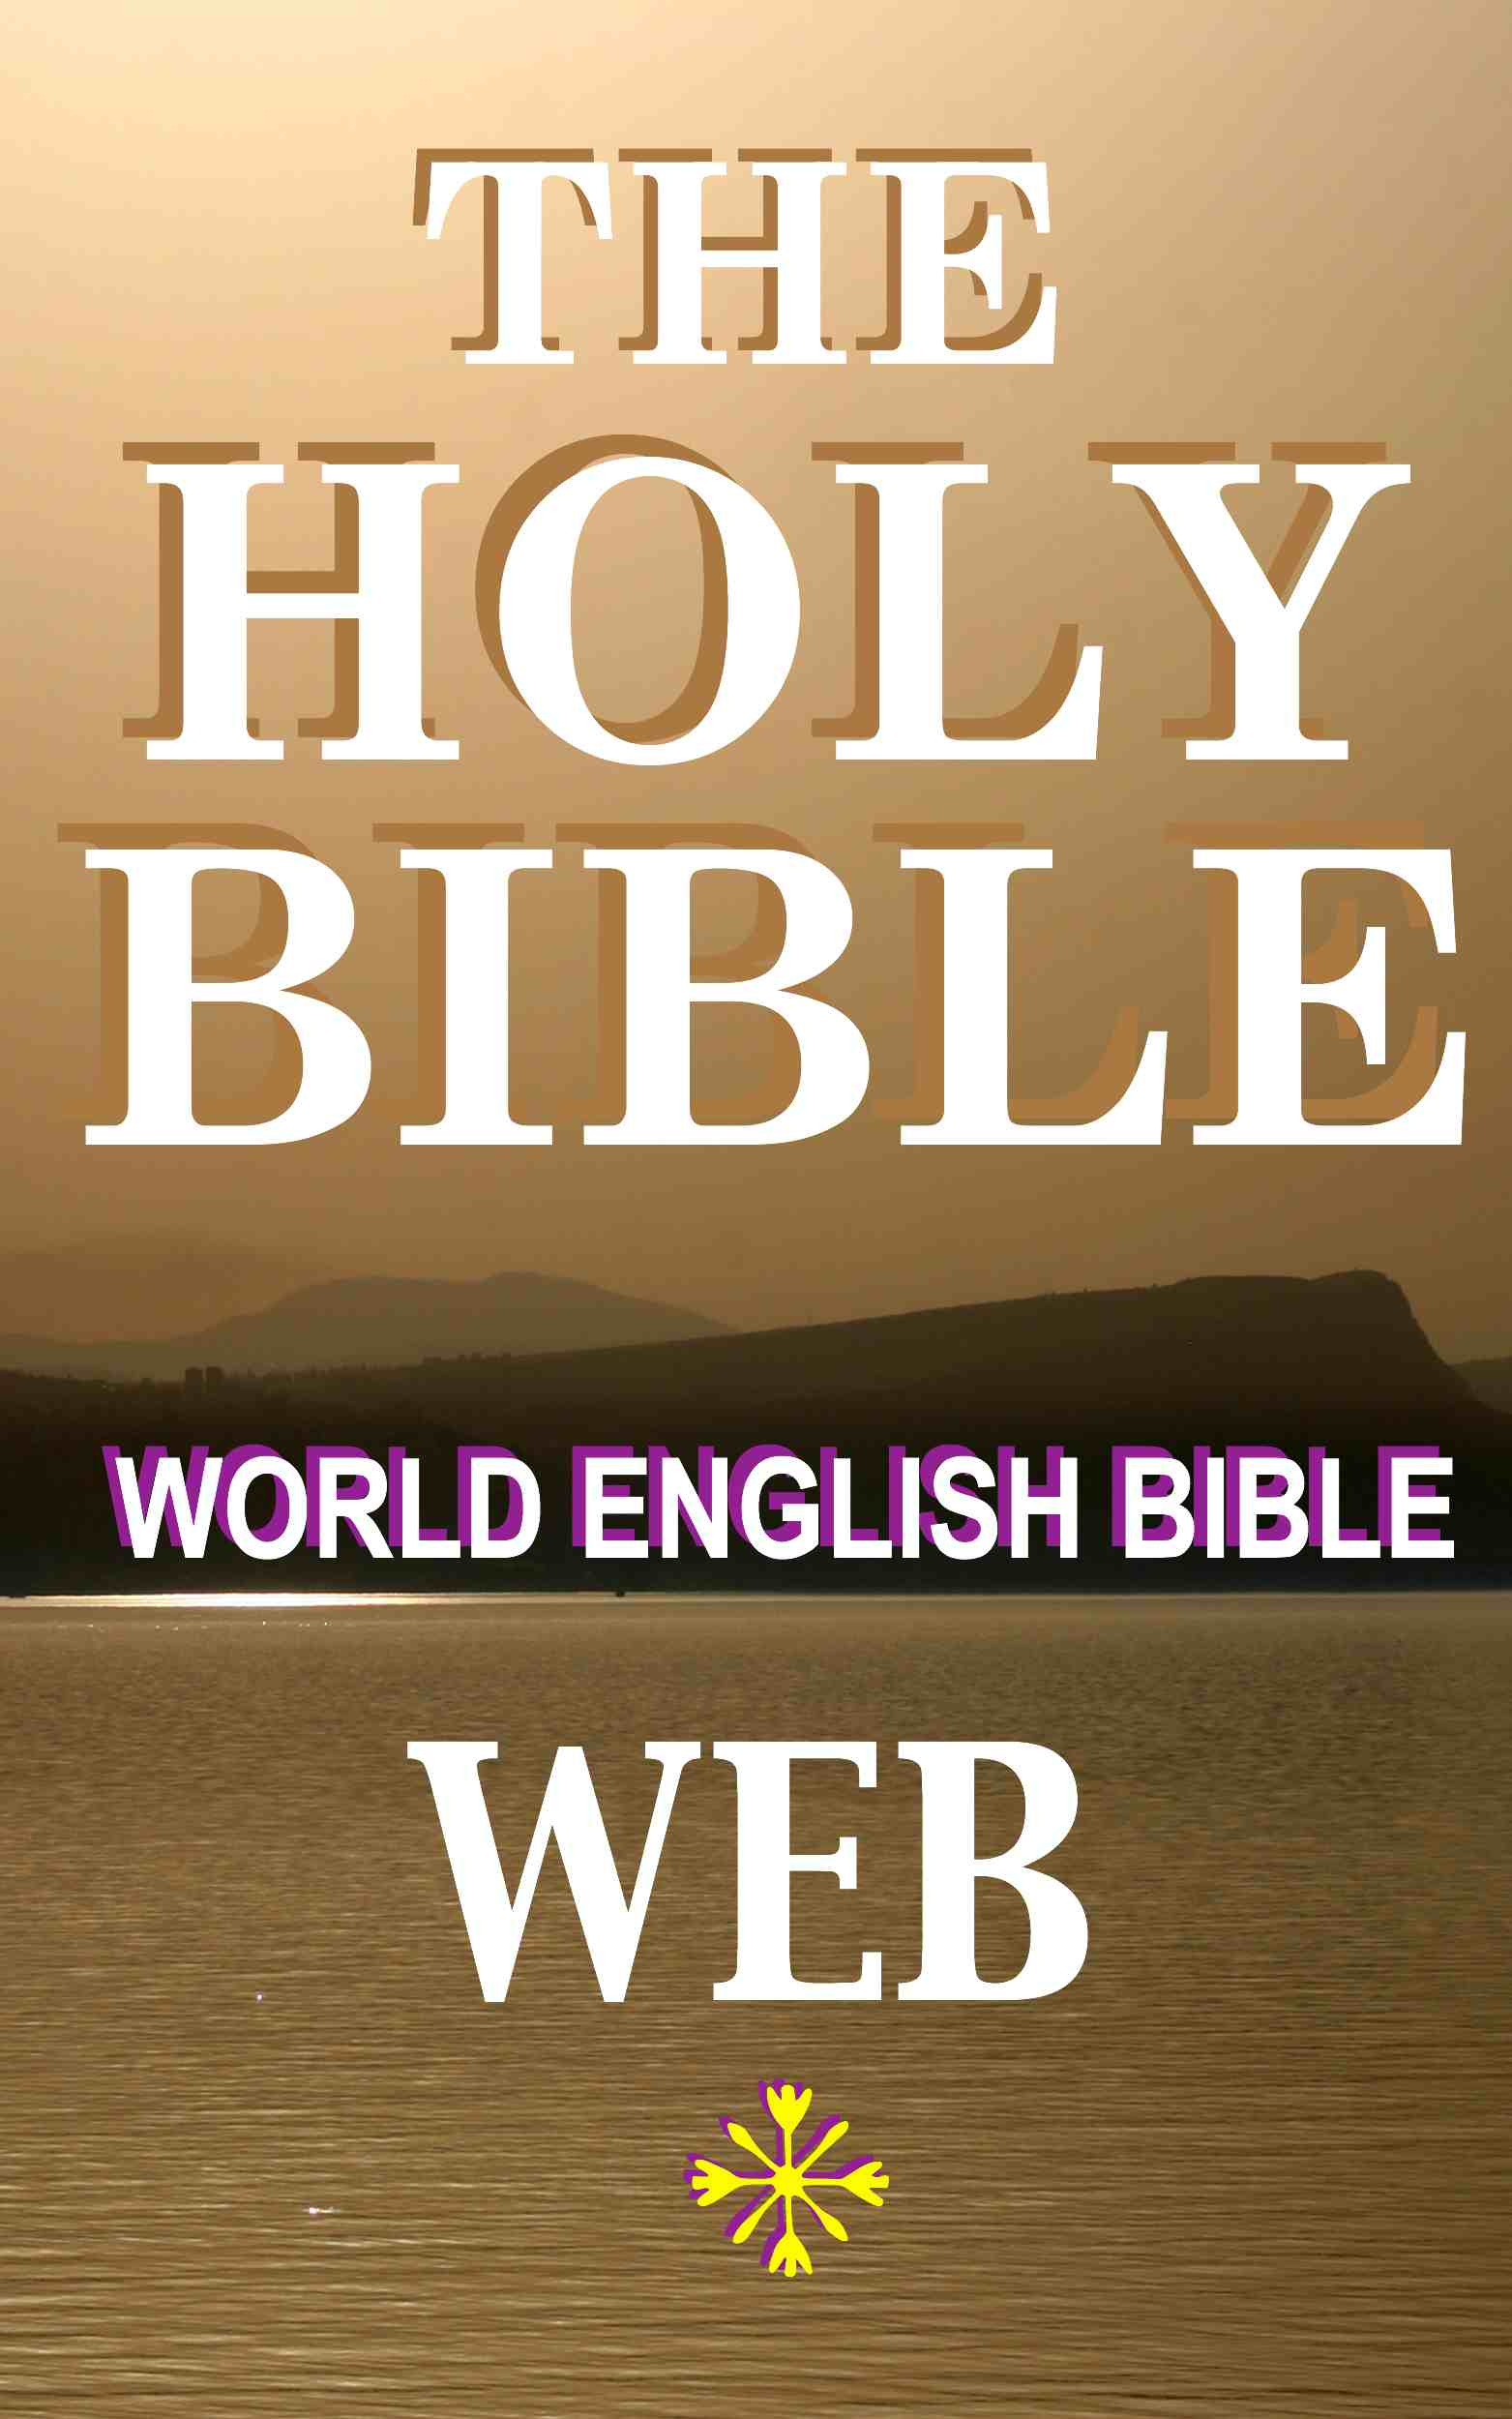 World English Bible - Wikipedia